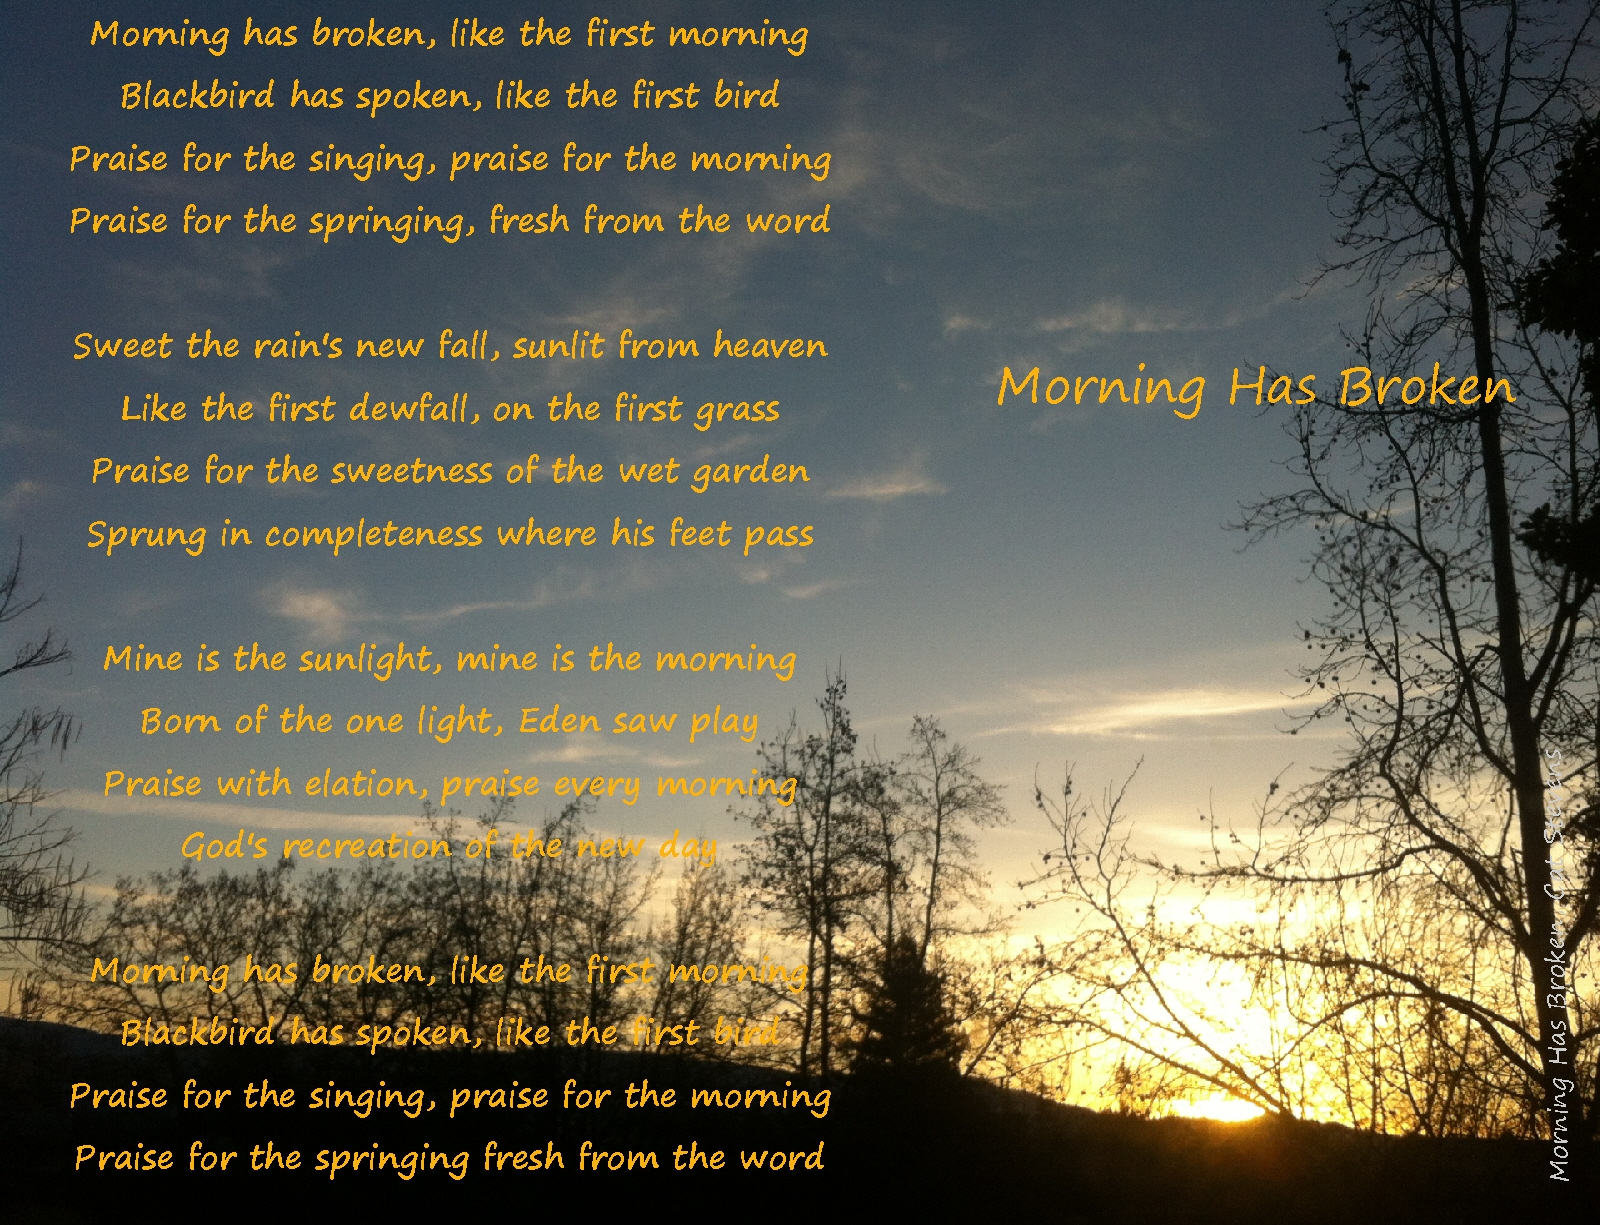 Morning has broken…. love and appreciation, as life hurries on ...